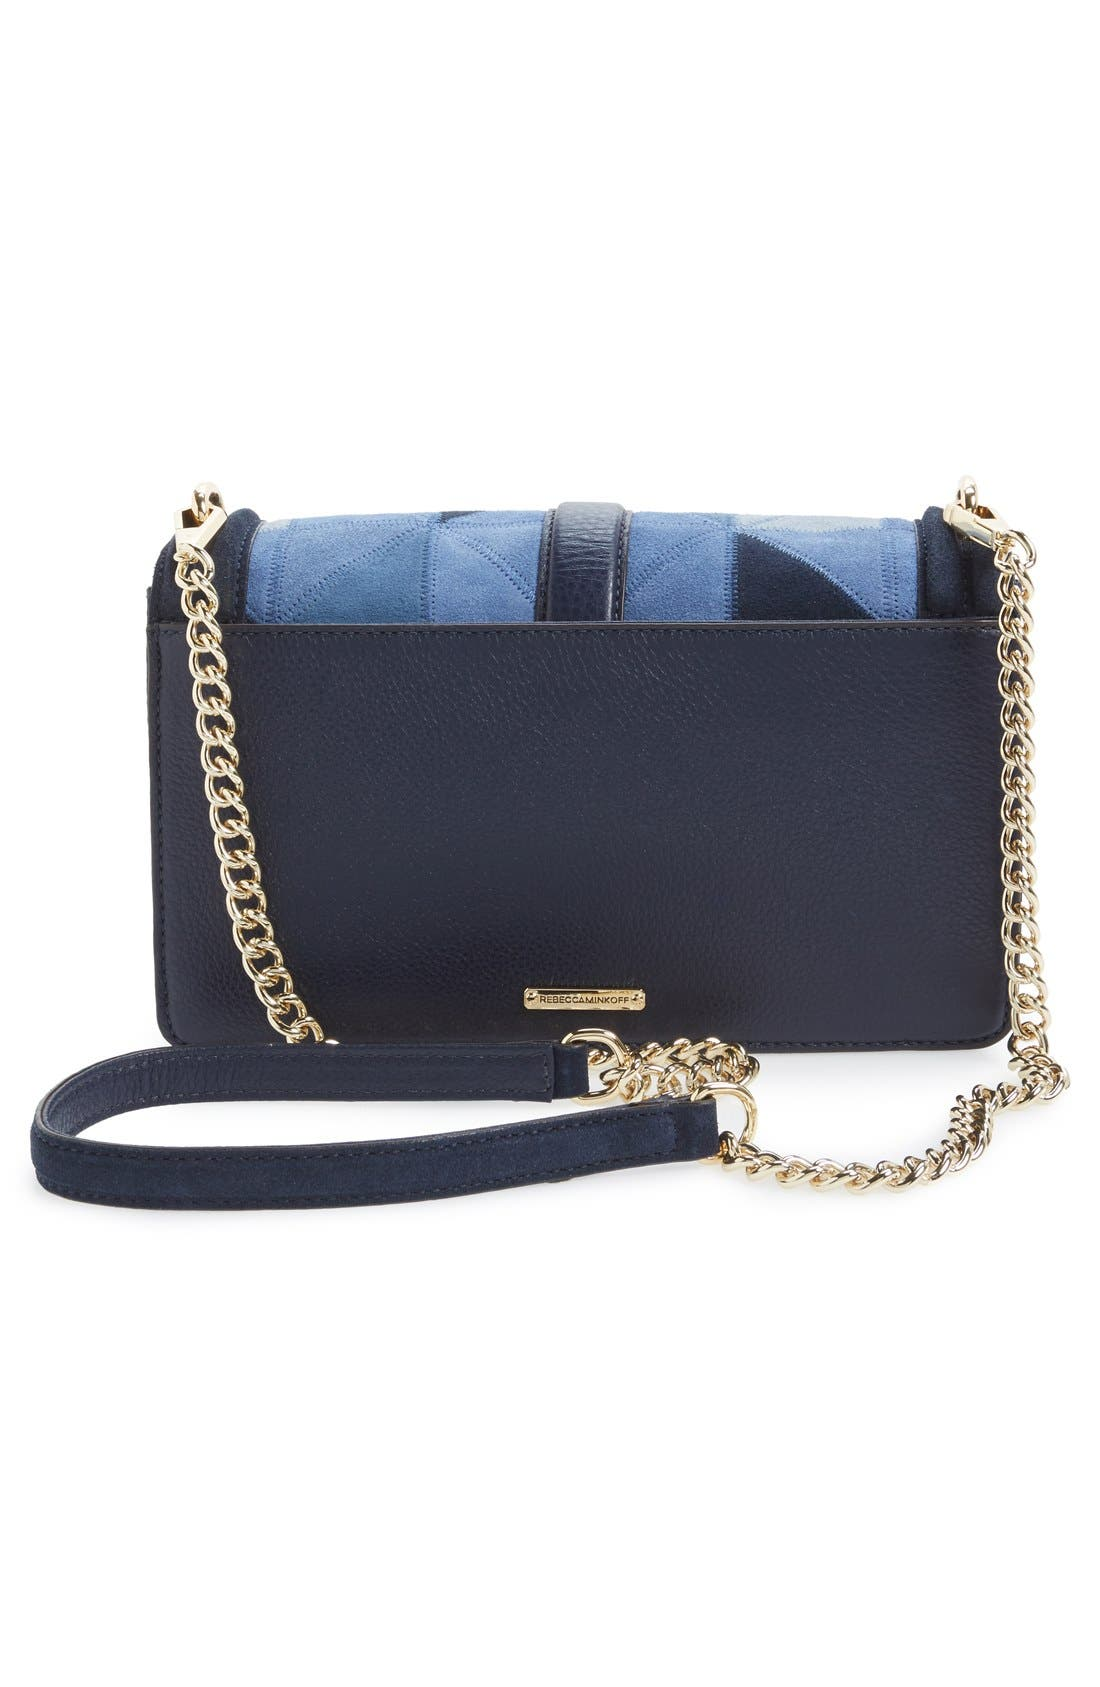 Alternate Image 3  - Rebecca Minkoff 'Love' Patchwork Leather Crossbody Bag